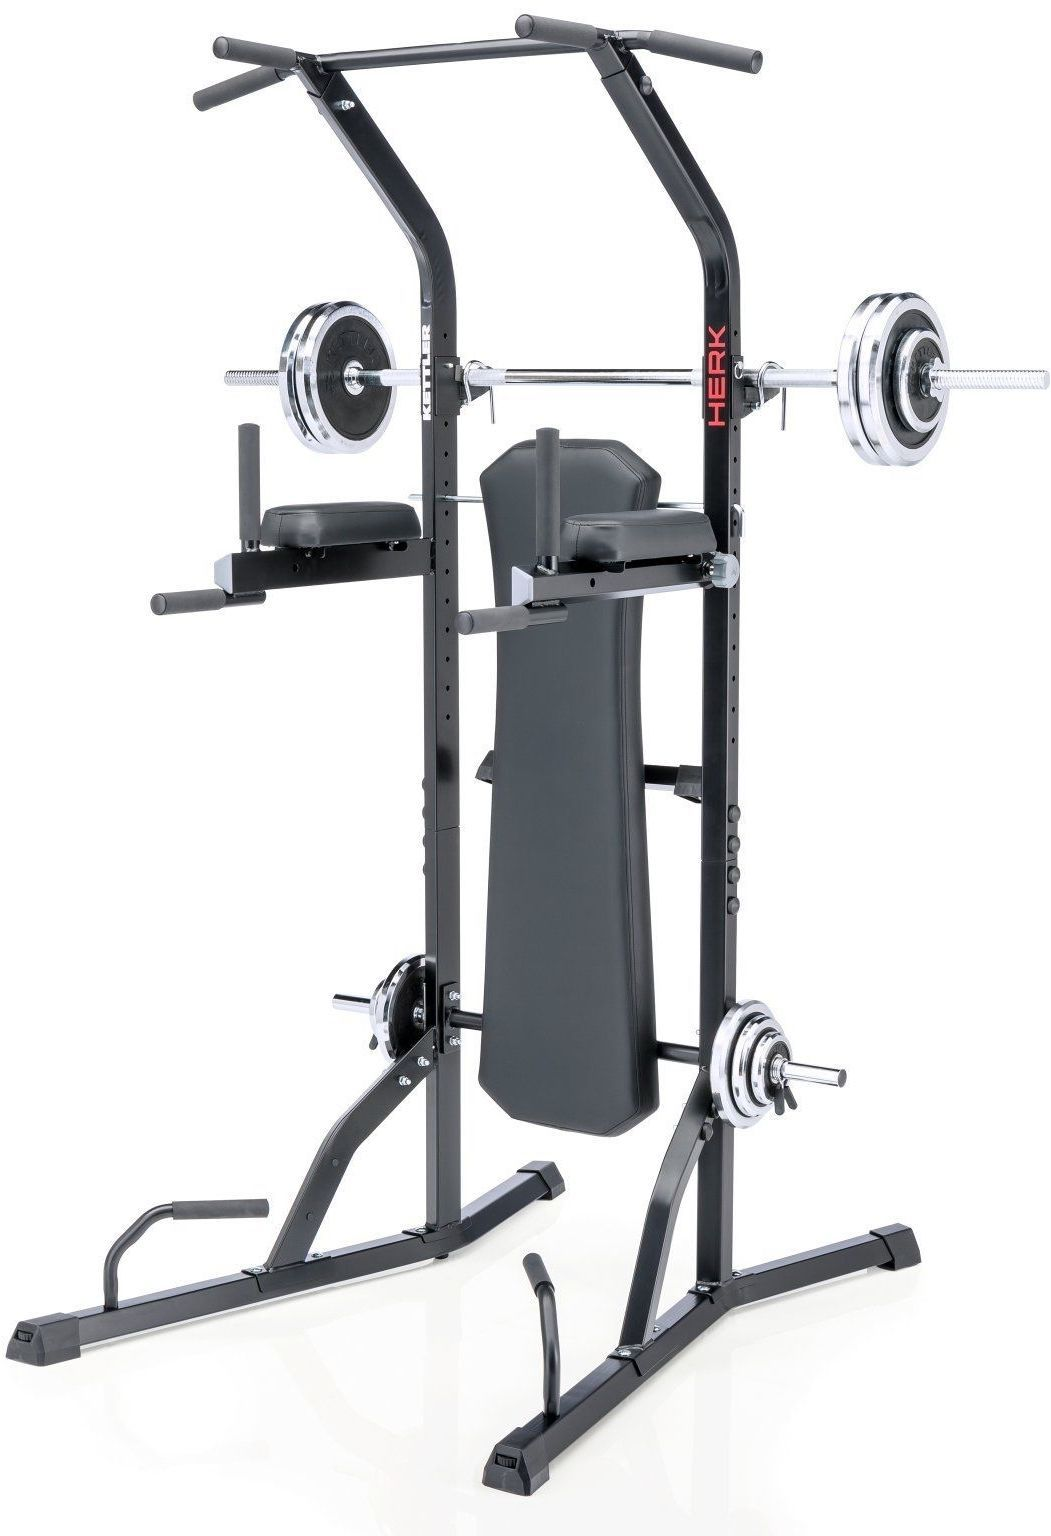 Power Tower Exercise Equipment Workout Home Gym Squat Rack Bench Press Pull Up Ebay No Equipment Workout Gym Equipment Workout Home Workout Equipment